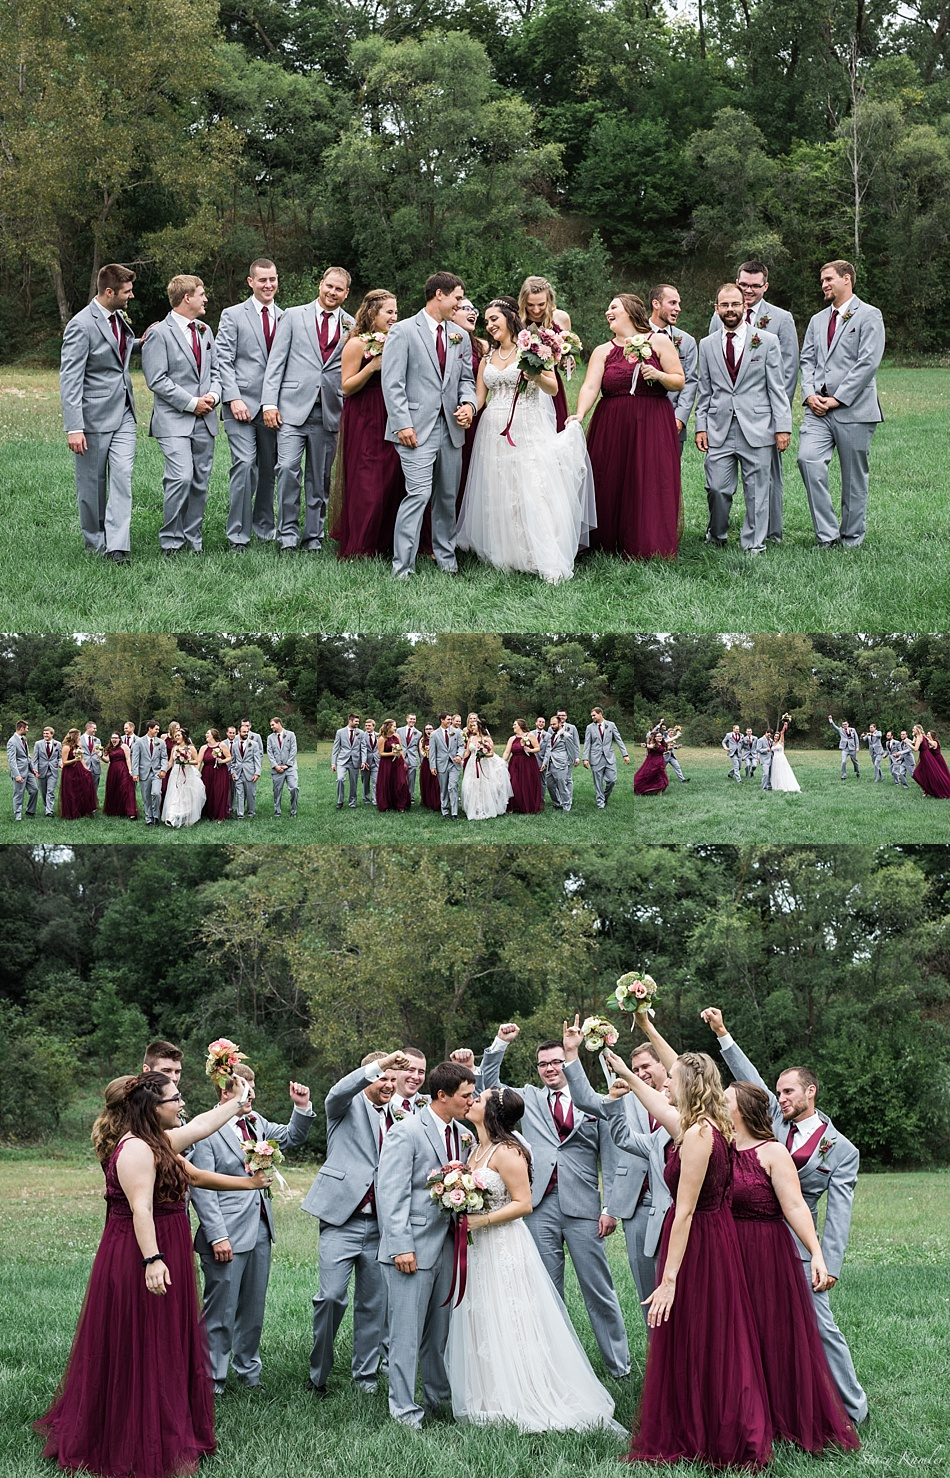 Bridal Party Photos in Fremont, NE